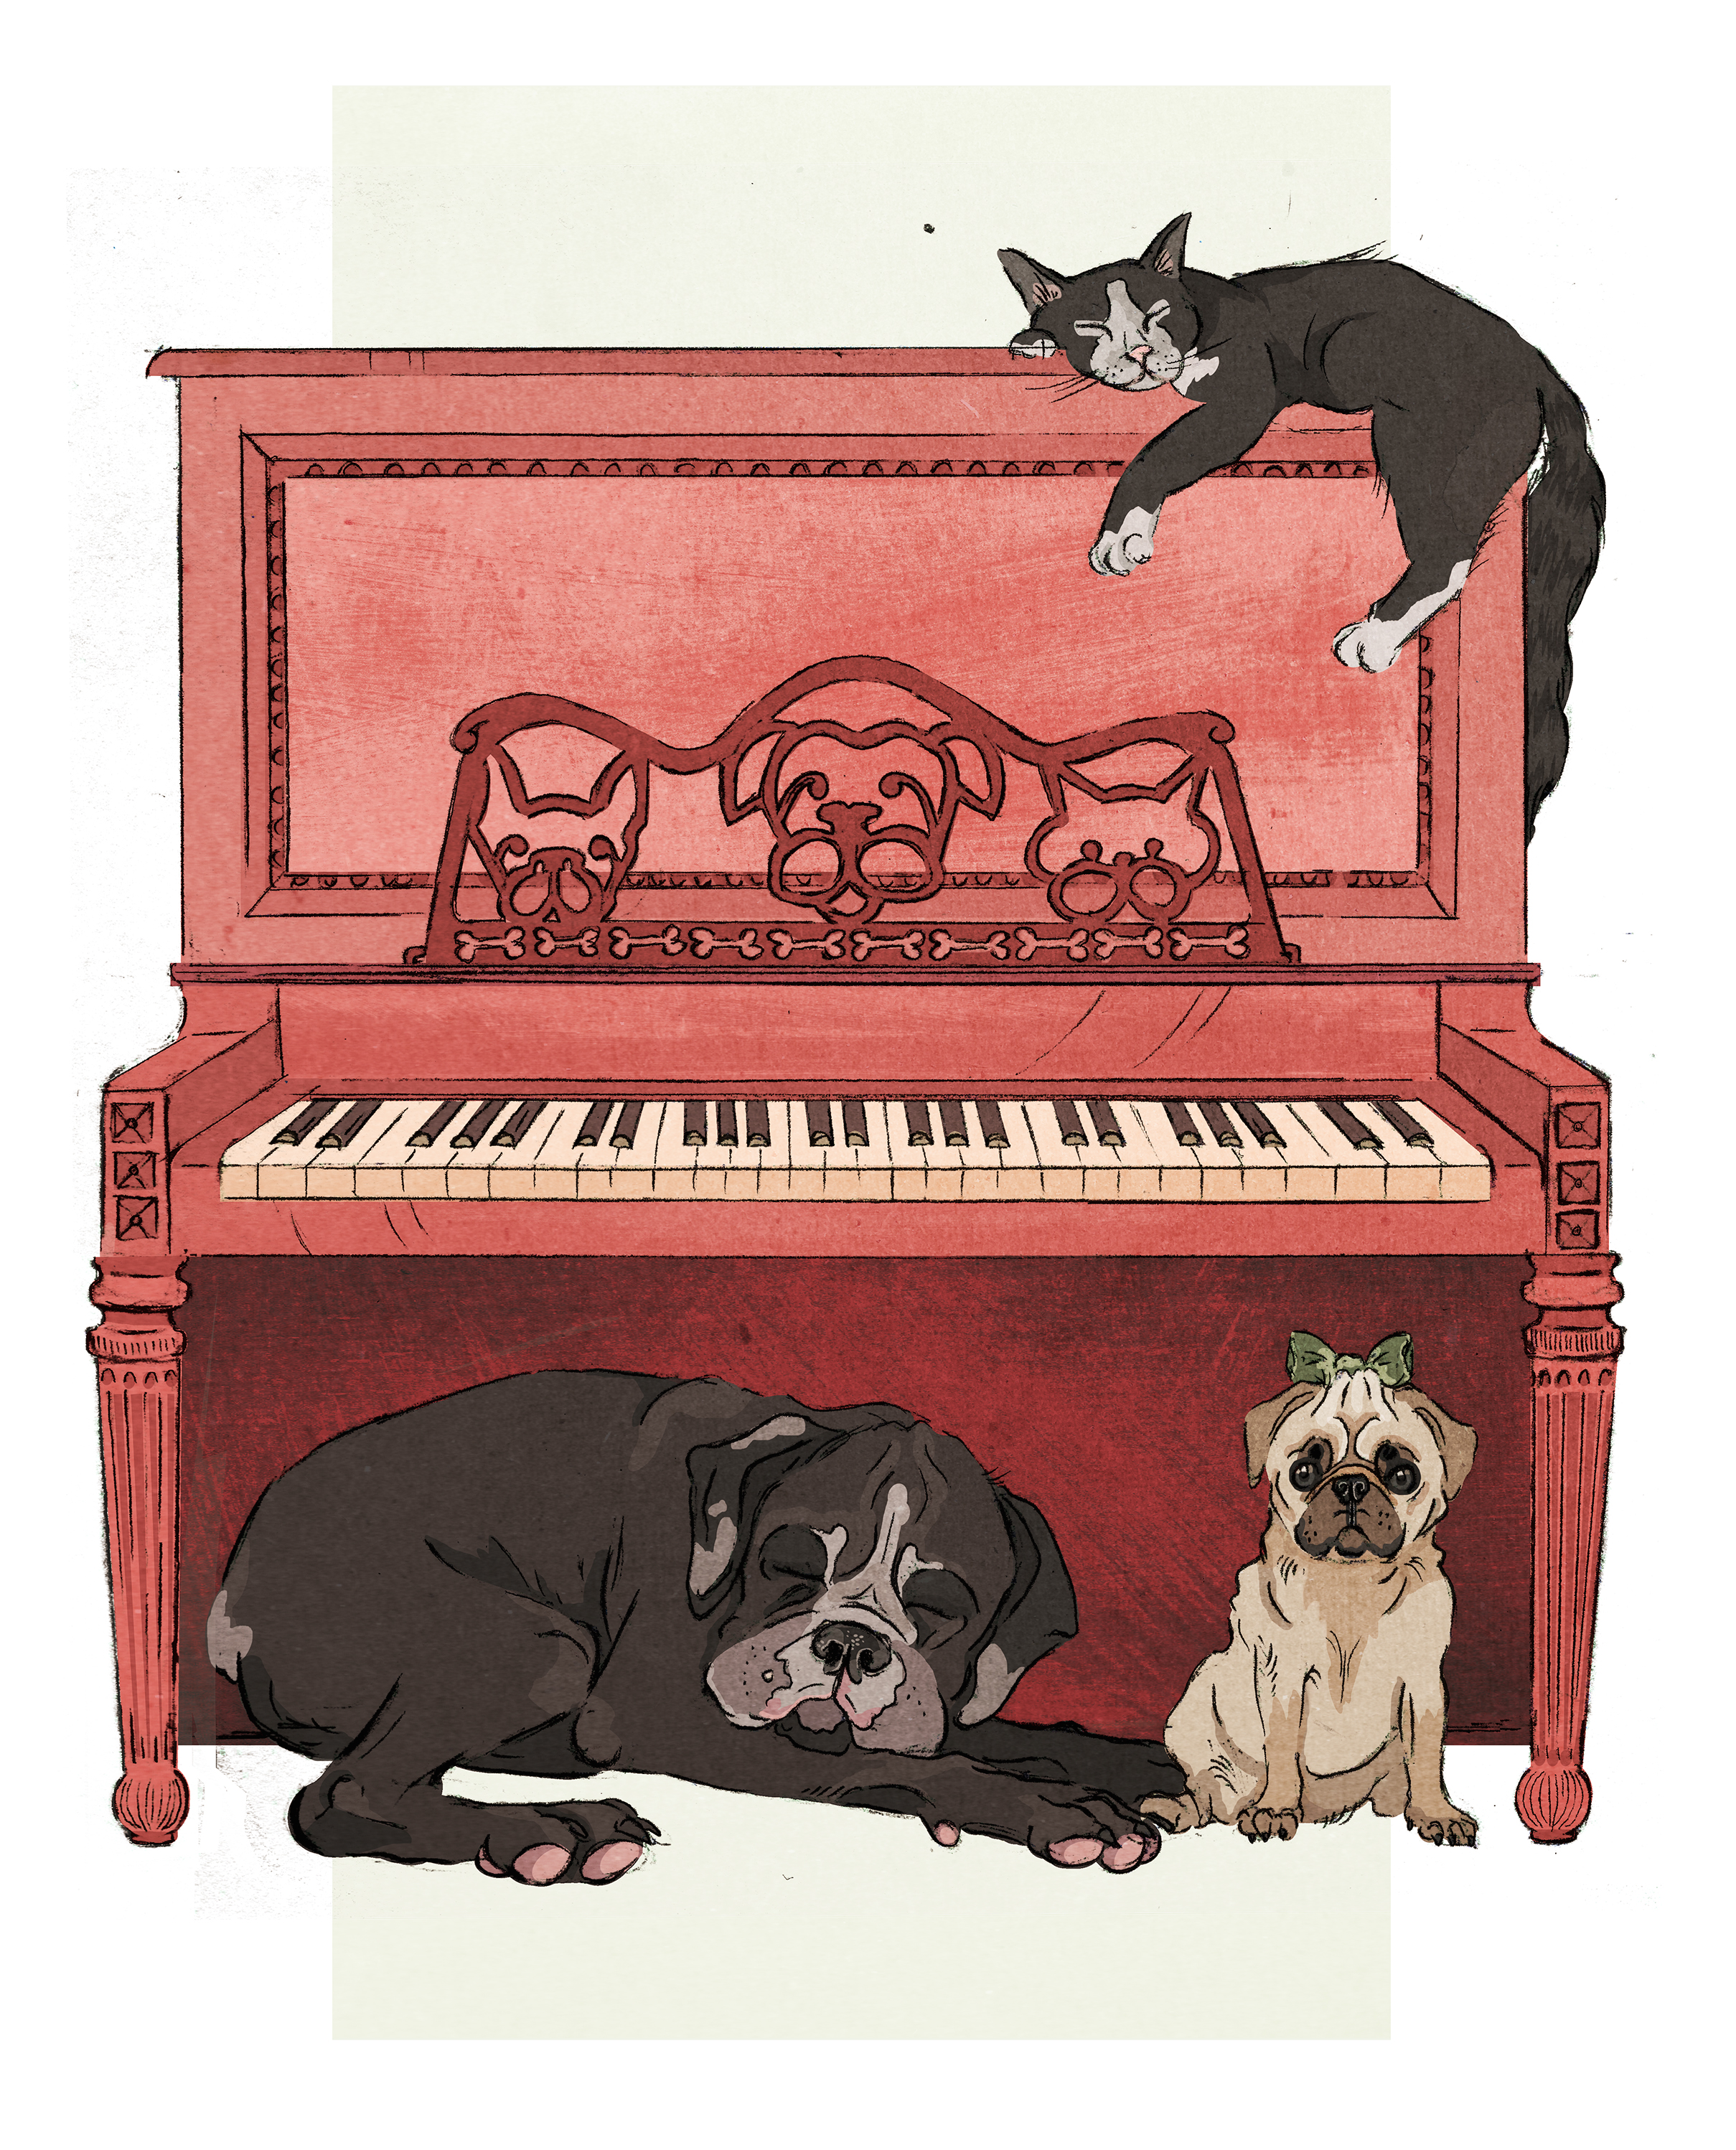 animalpianocolouredit.jpg